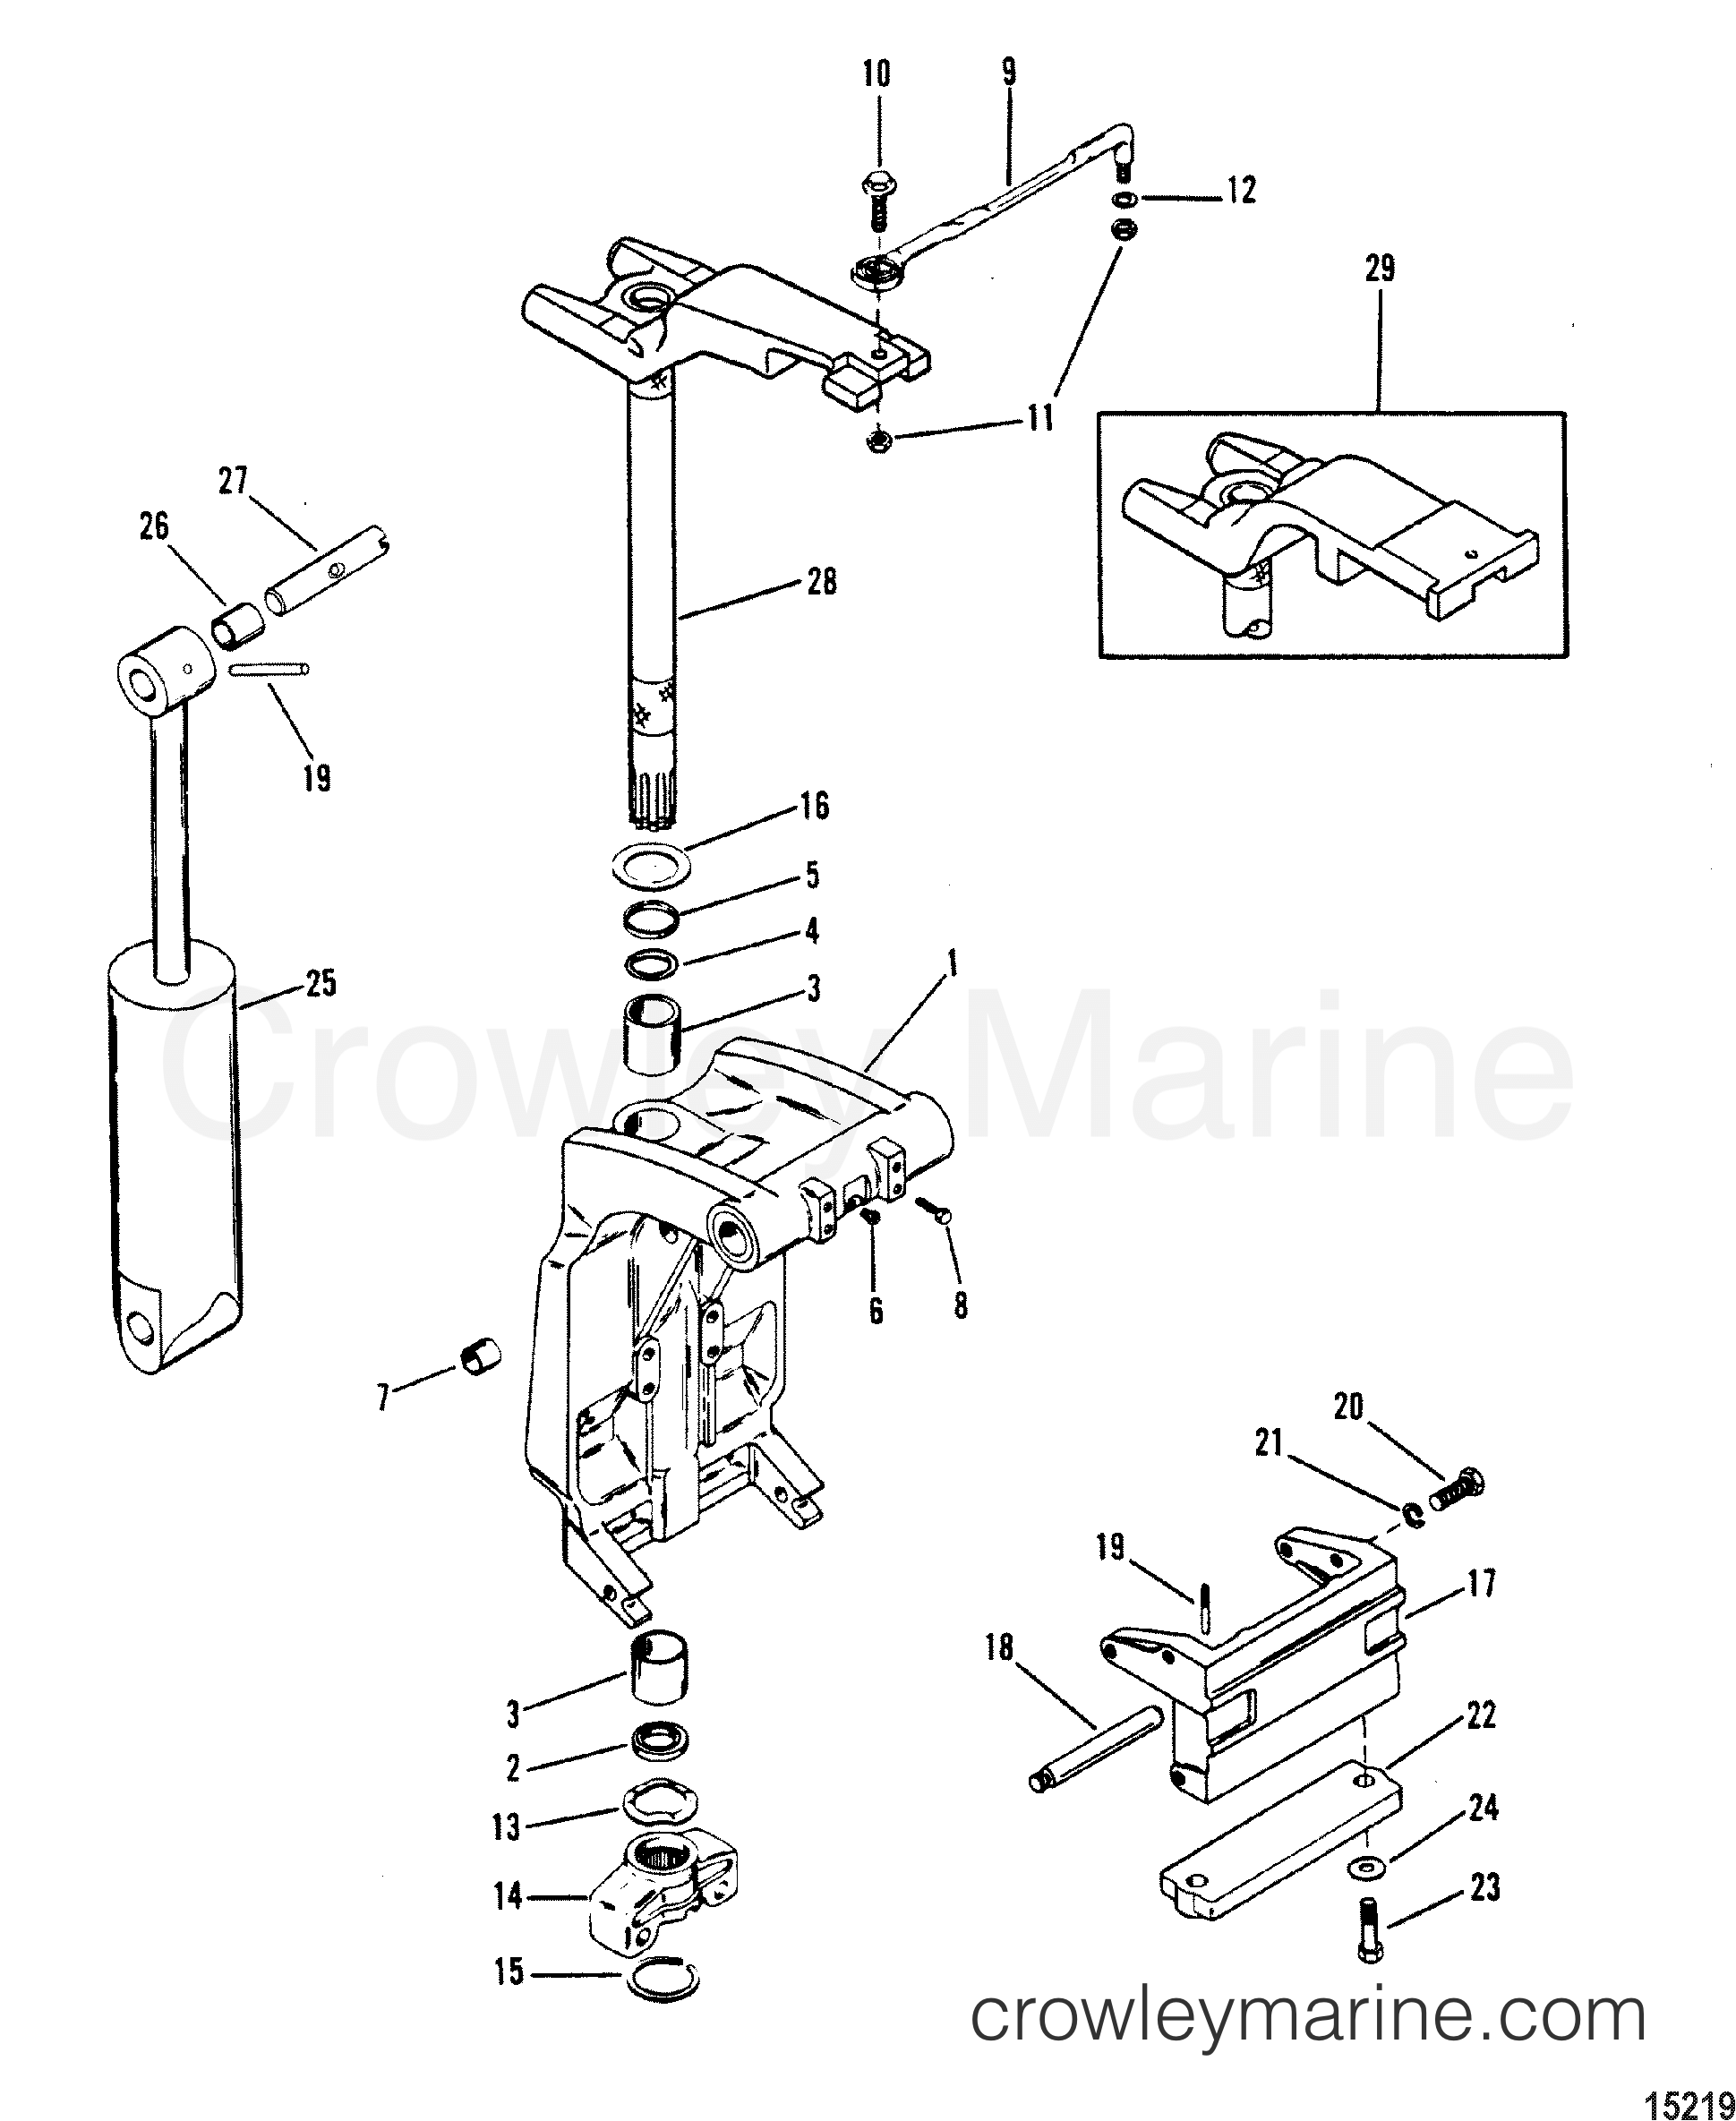 SWIVEL BRACKET AND STEERING ARM(CASTING NUMBER 1499-8709C5